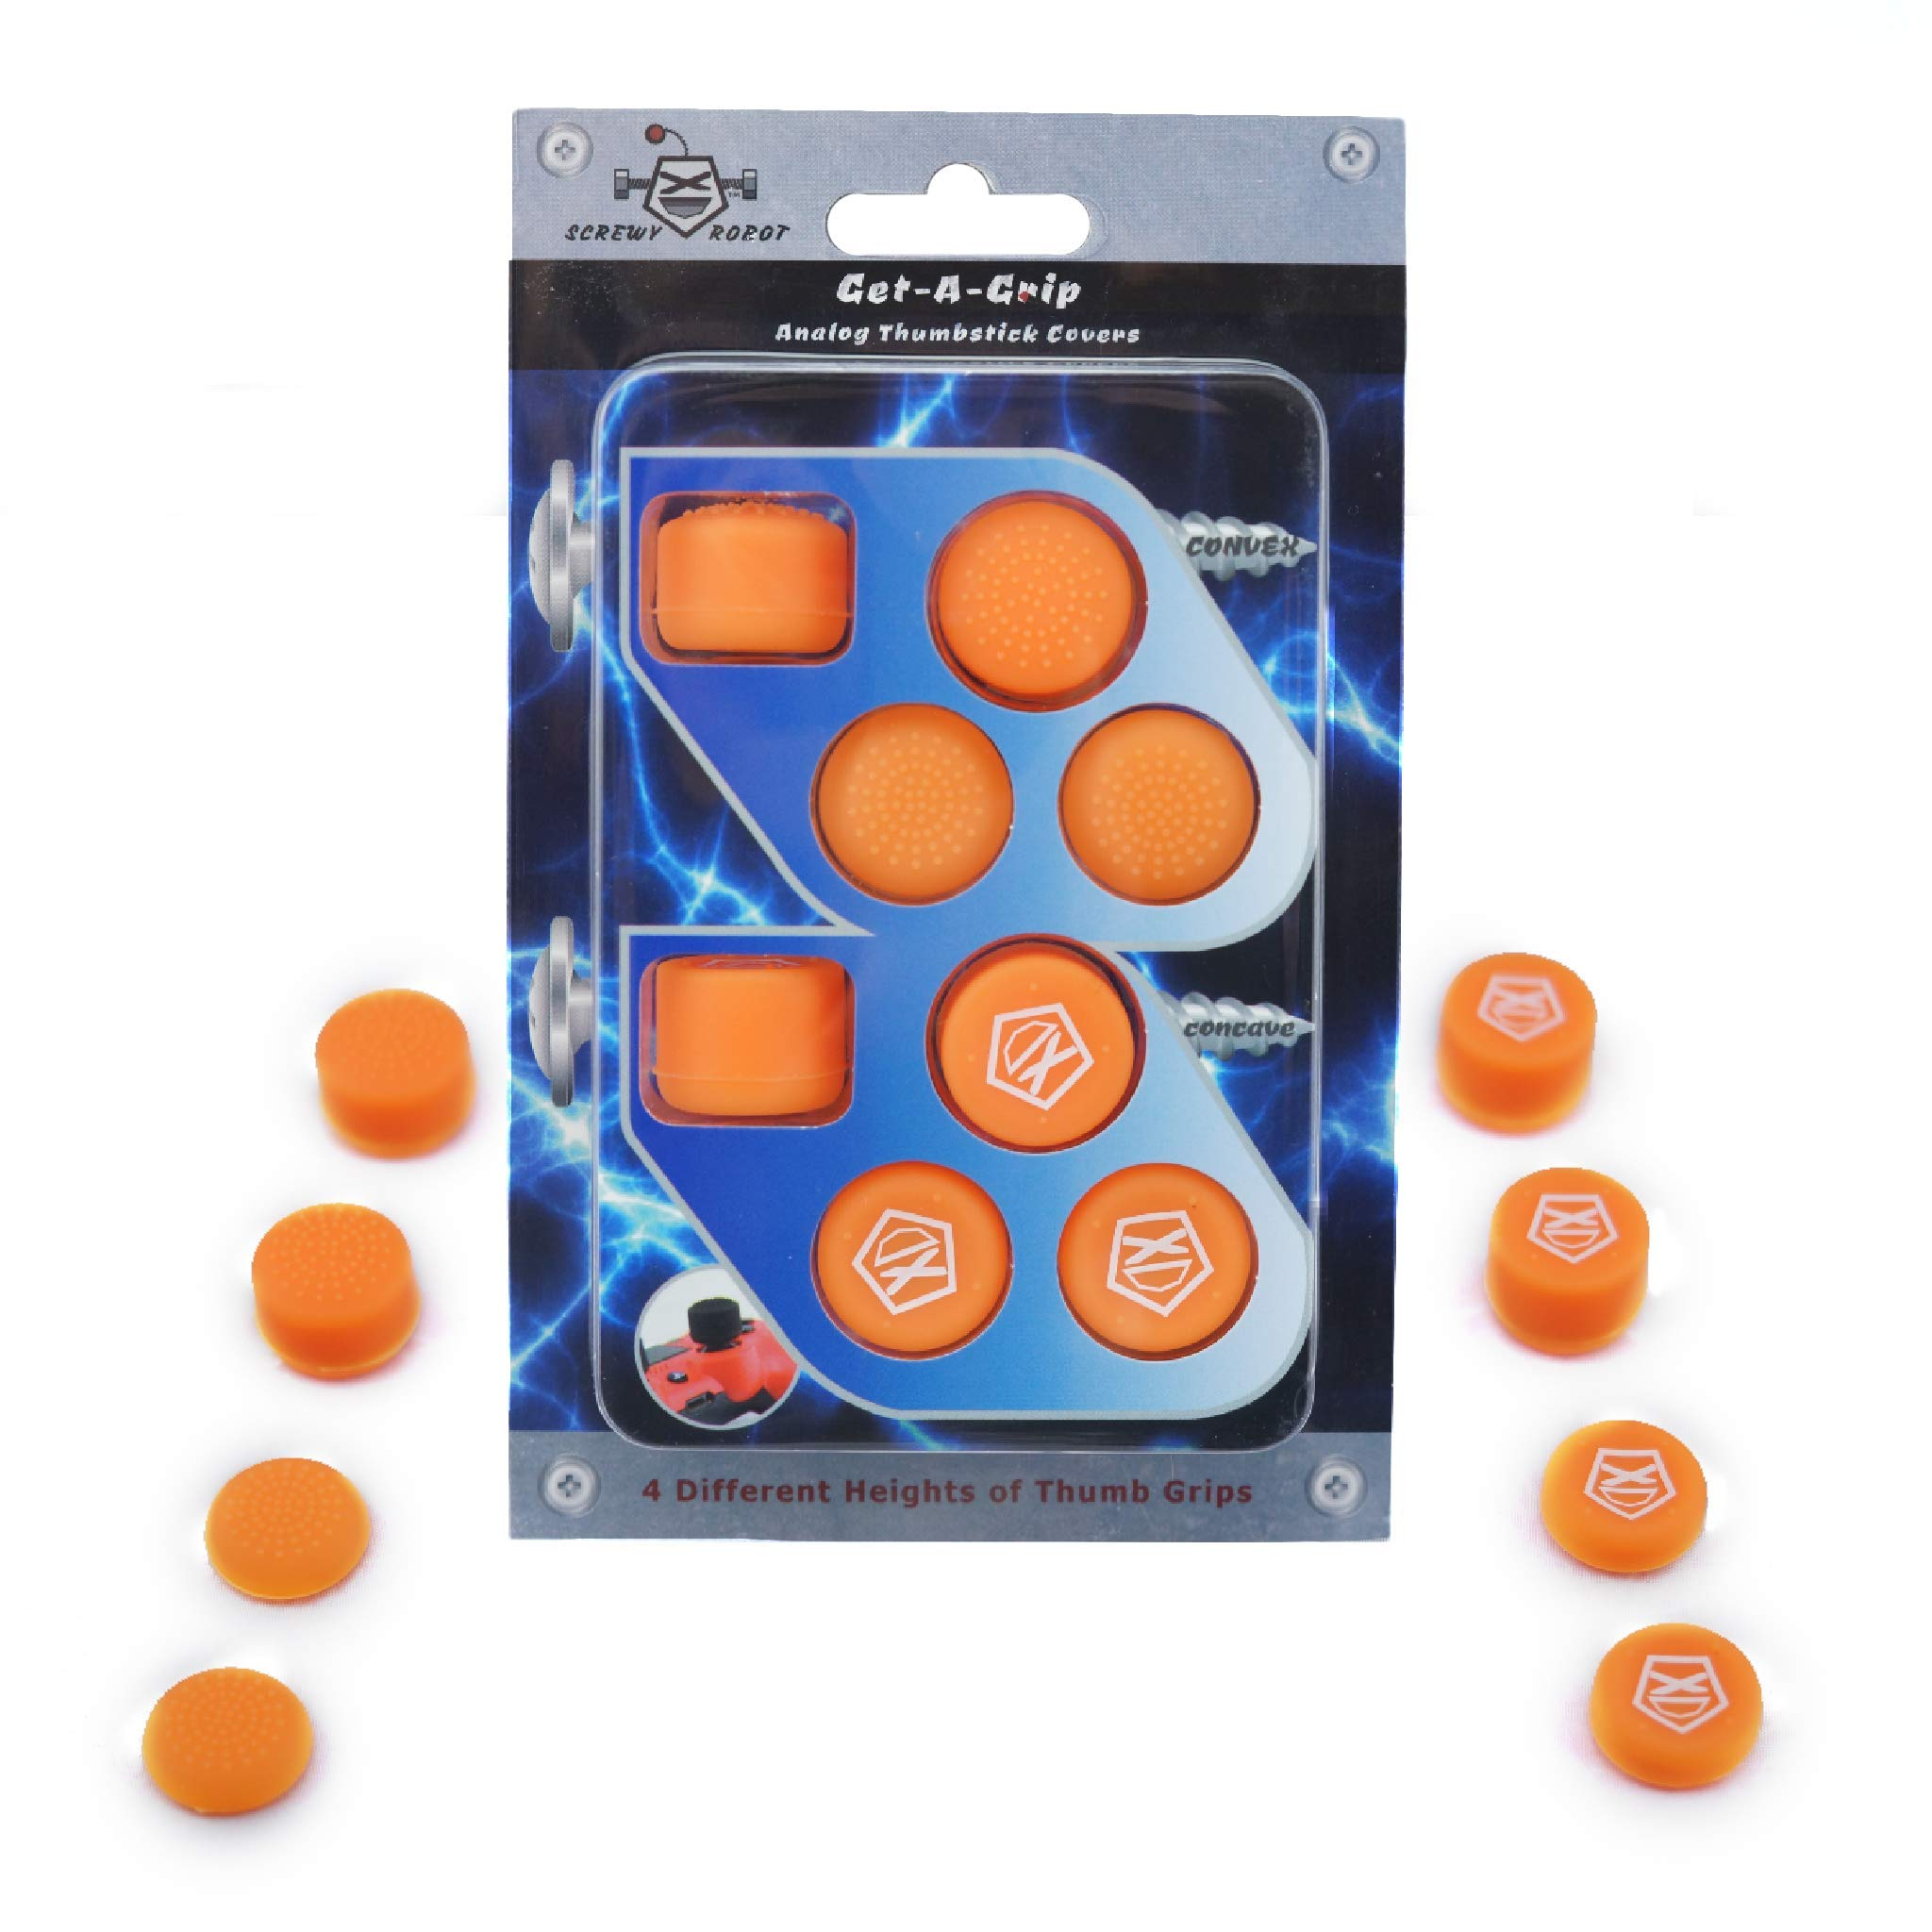 Get-A-Grip Analog Thumbstick Grip Covers for PS4/PS3 by ScrewyRobot (Orange) by ScrewyRobot